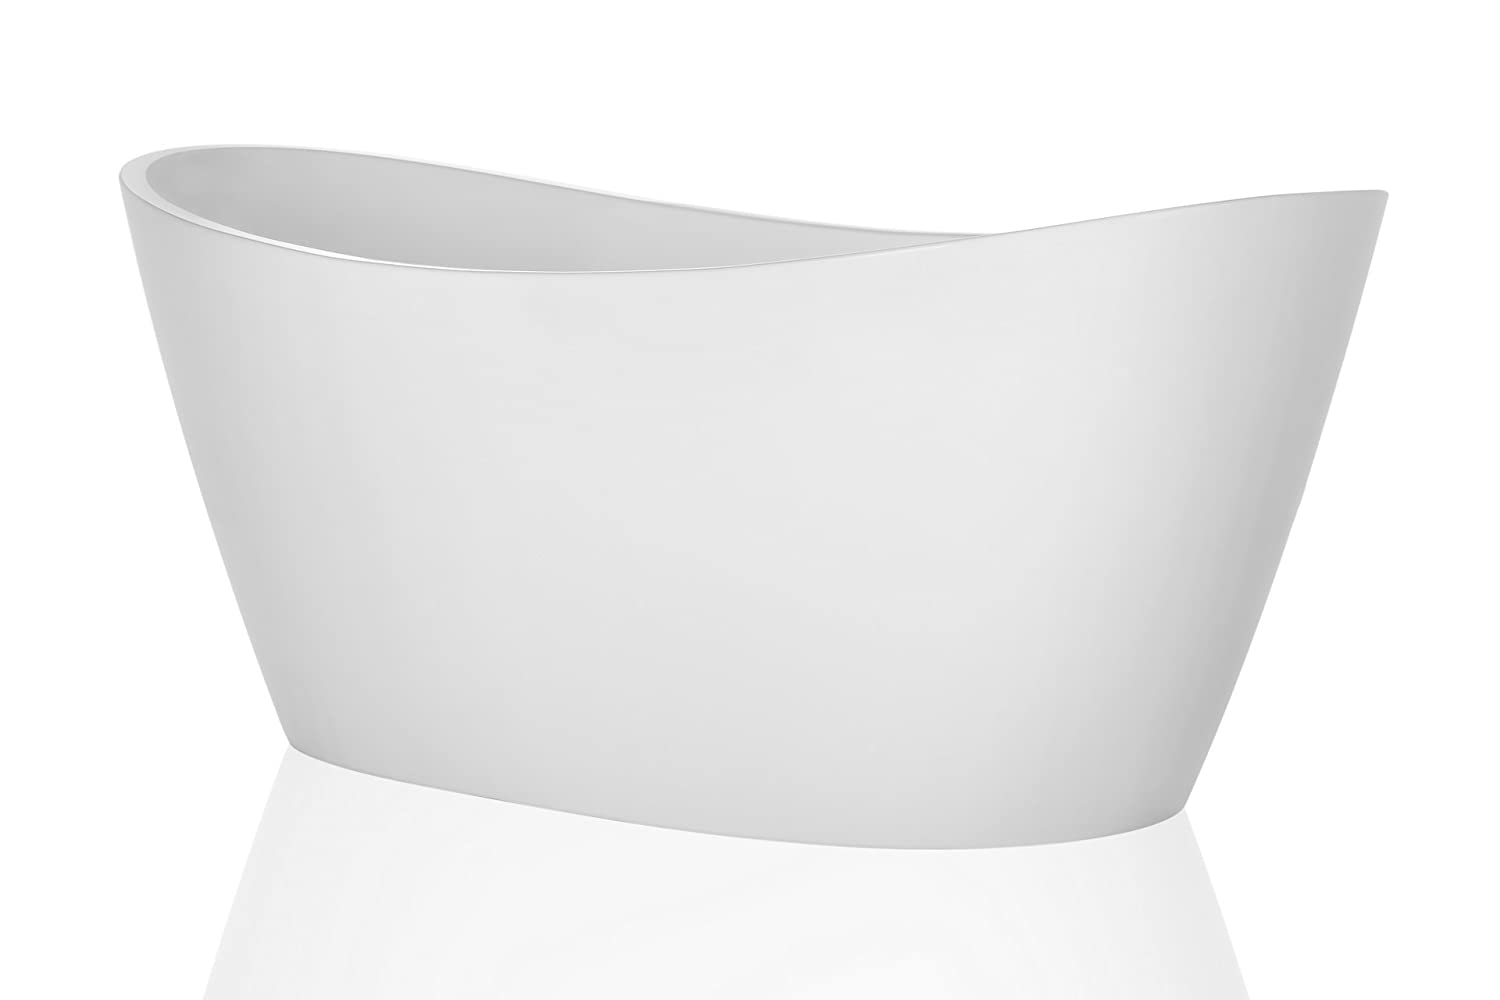 Empava 67 Made in USA Luxury Freestanding Bathtub Soaking SPA Flat Bottom Stand Alone Tub Modern Style with Custom Contemporary Design in White Acrylic EMPV-FT1518